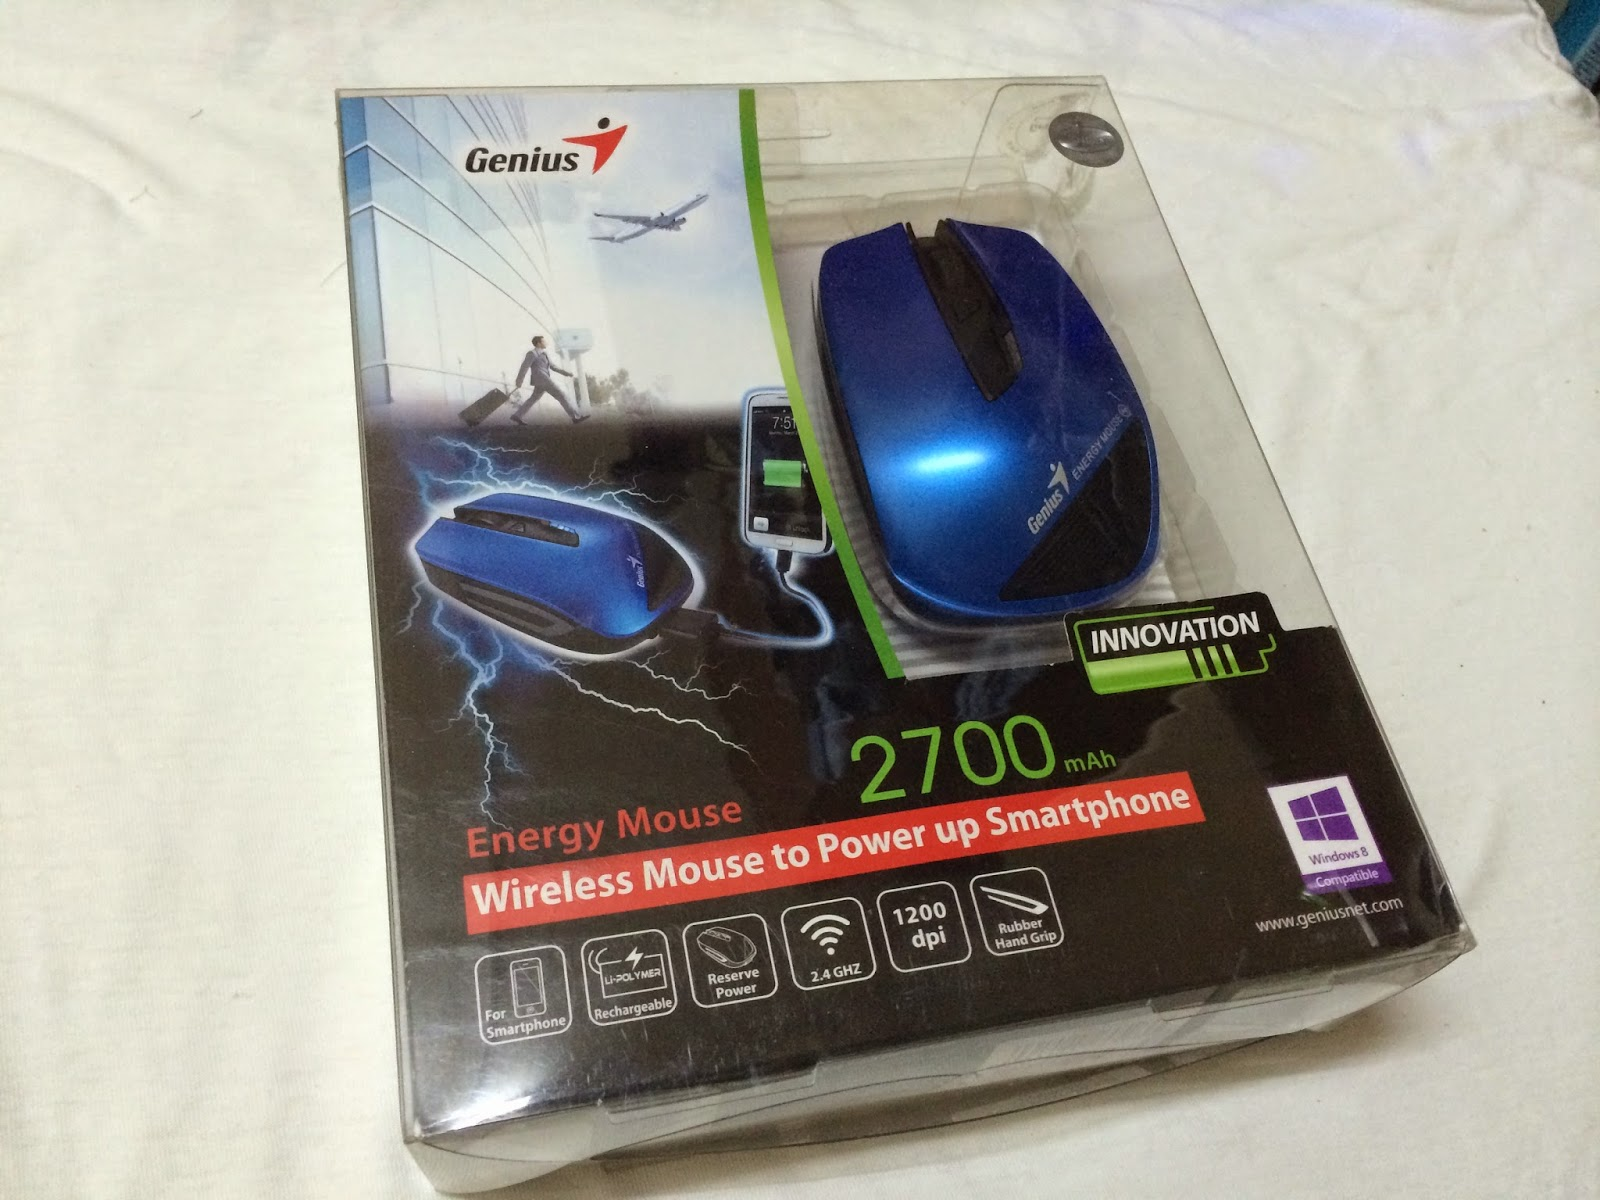 Unboxing Review Genius Energy Mouse Wireless The Comes In A Clear Plastic Box That Allows Us To See Actual Product Prominent Features Of Is